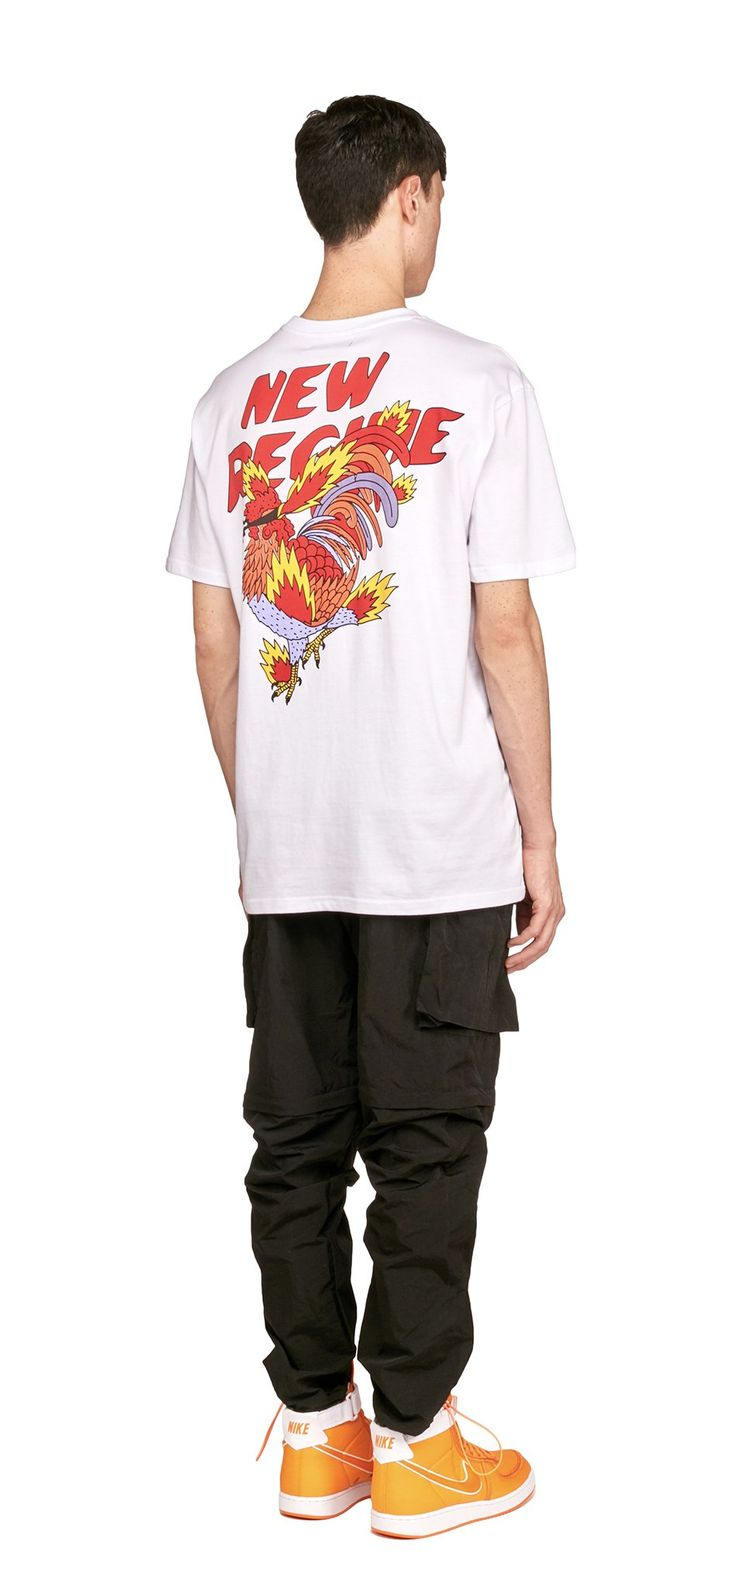 Ricardo Cavolo X Atelier New Regime Flaming Rooster T-Shirt (White) / This short sleeve t-shirt features the Flaming Rooster collab artwork printed on the back, vigilance, courage and pride are a few of the symbols behind the rooster. #ricardocavolo